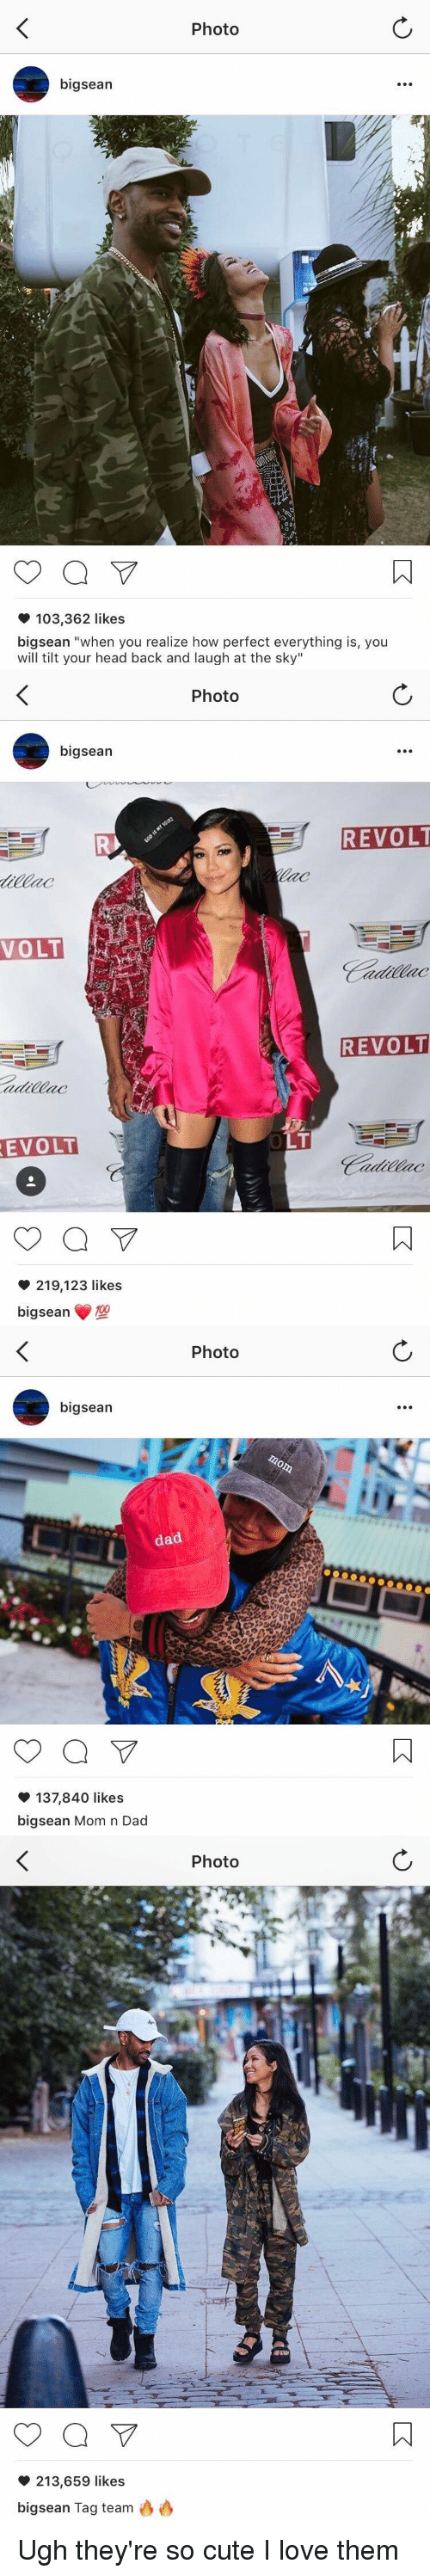 """Tilting: Photo  bigsean  103,362 likes  bigsean """"when you realize how perfect everything is, you  will tilt your head back and laugh at the sky""""   bigsean  VOLT  REVOLT  a  219,123 likes  big sean  120  Photo  REVOLT  REVOLT   Photo  bigsean  dad  a  137,840 likes  big sean Mom n Dad   a  213,659 likes  bigsean Tag team  Photo Ugh they're so cute I love them"""